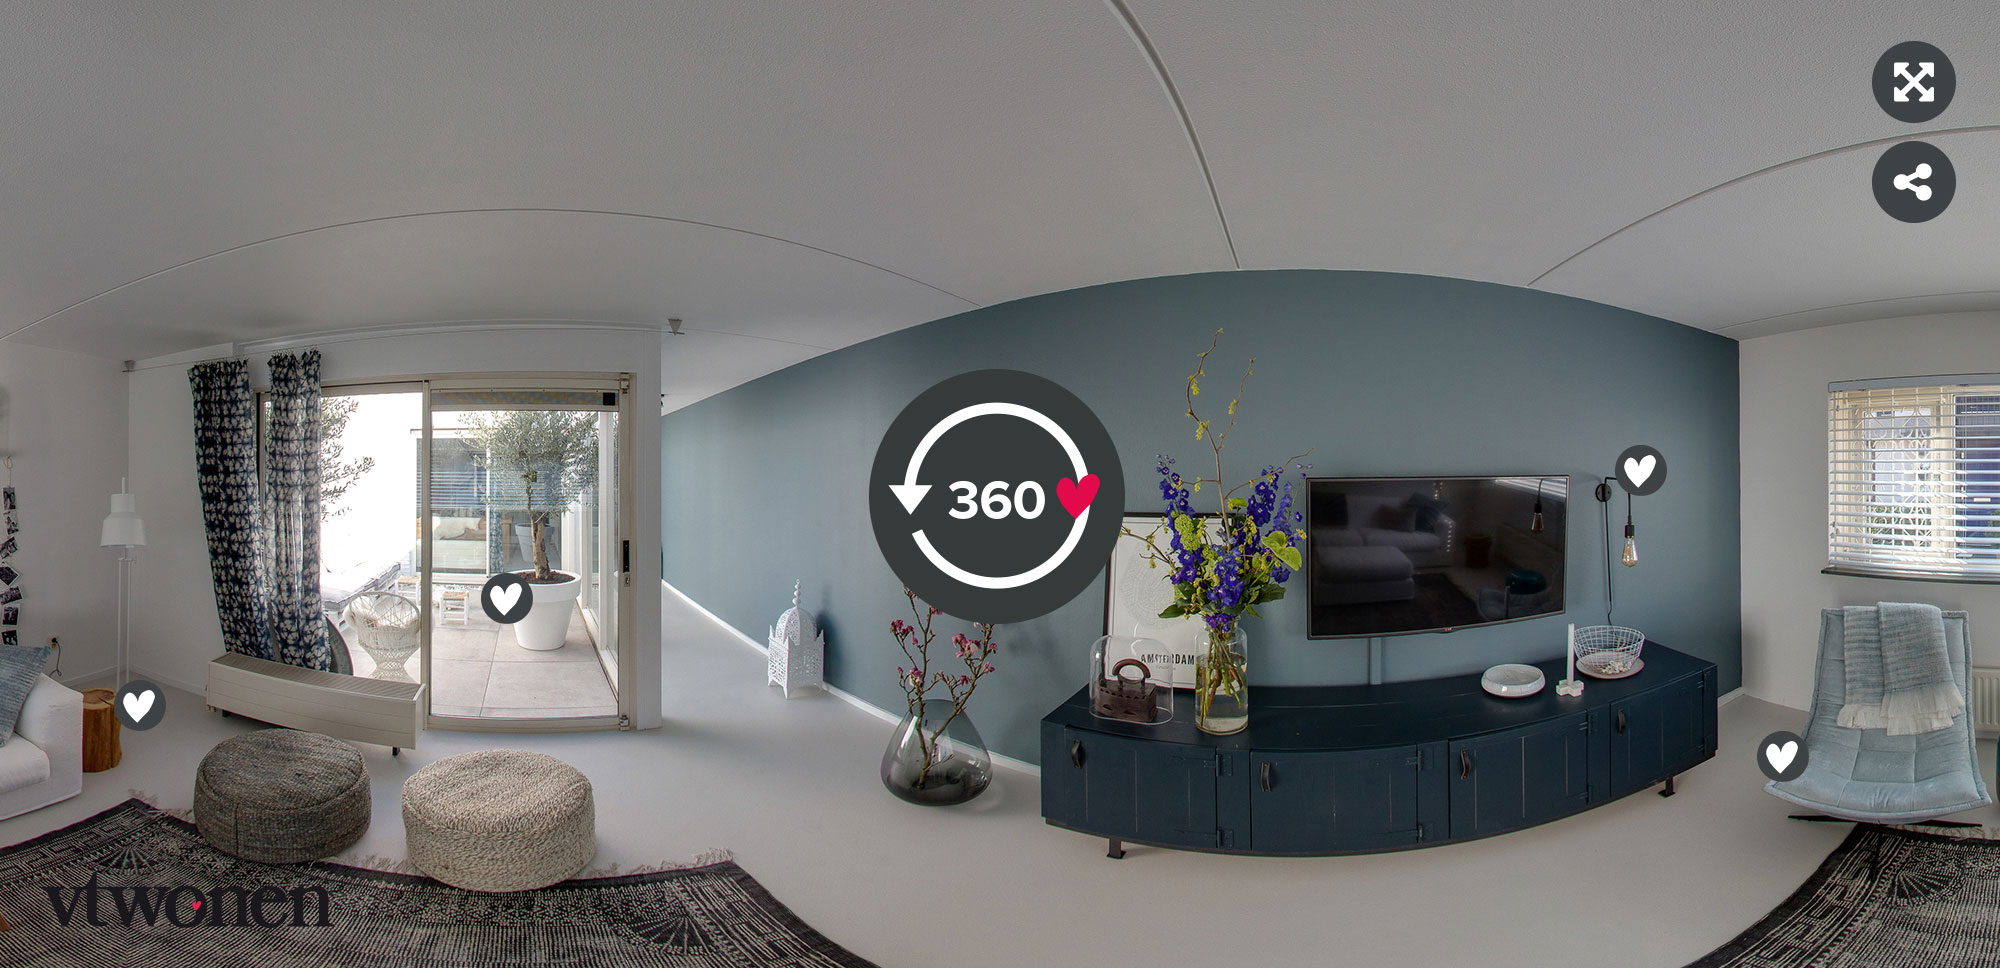 360tour in amsterdam